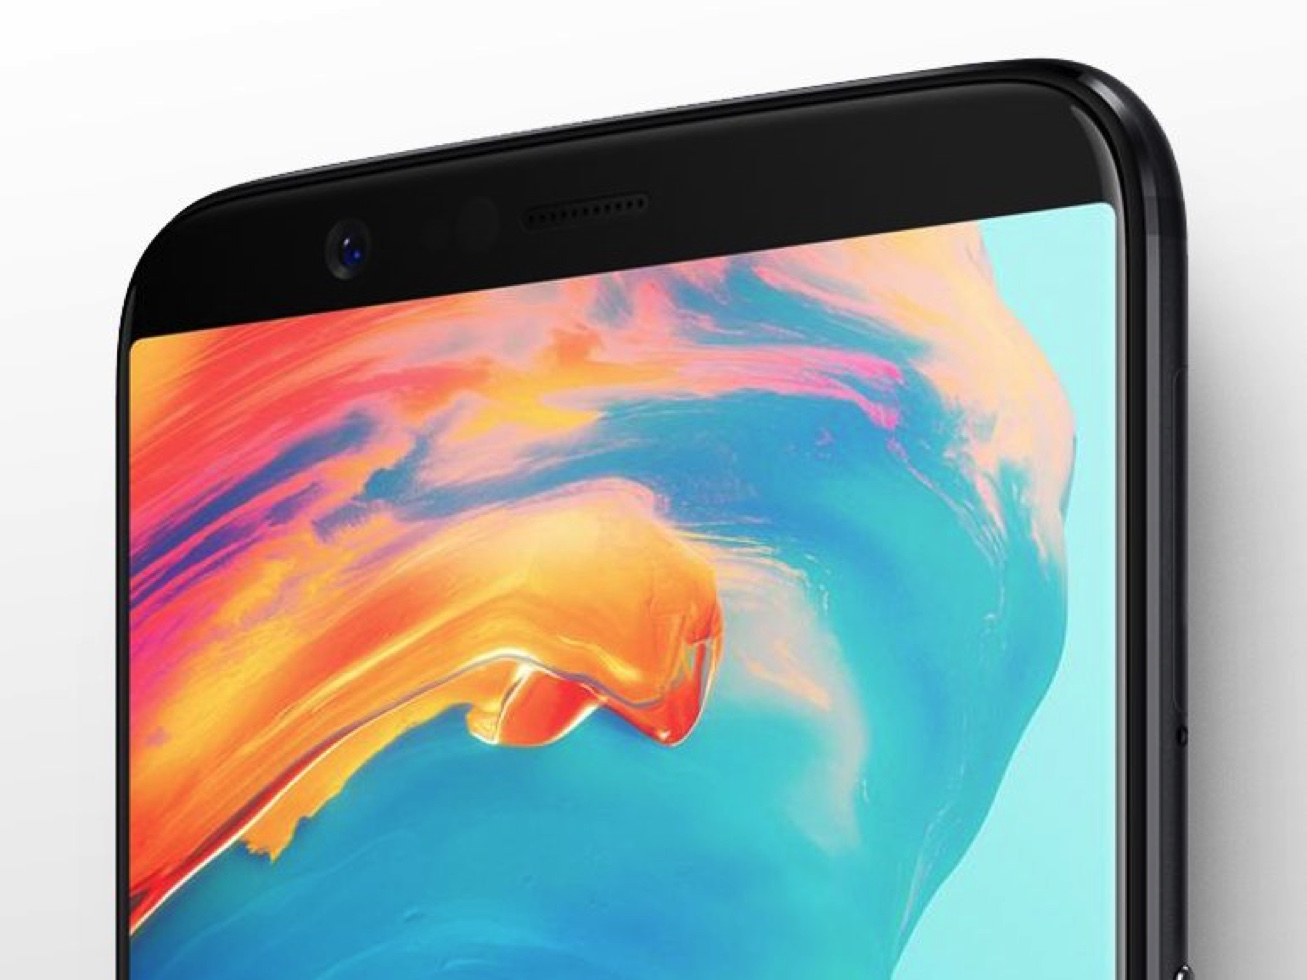 This might be our best look at the OnePlus 5T yet